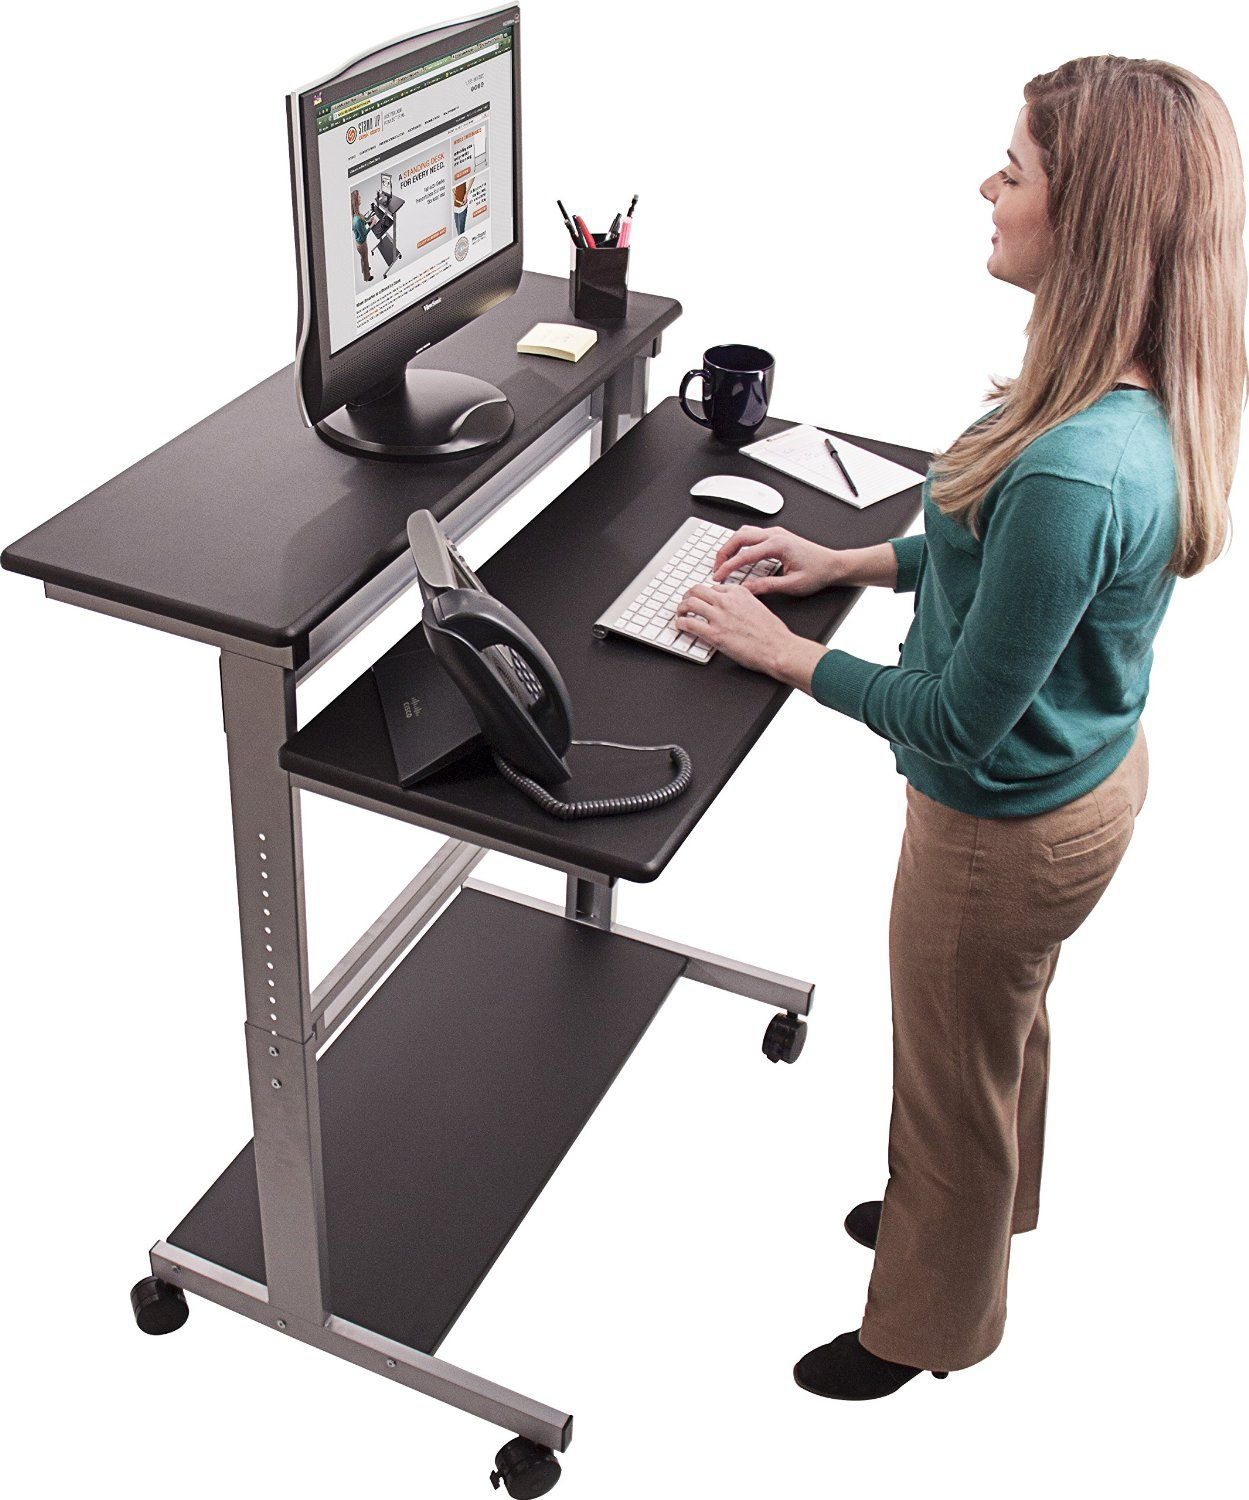 Double Black Shelves Mobile Ergonomic Stand Up Desk Black Shelves Mobile Ergonomic Stand Up Desk Kitchen Workstation Table